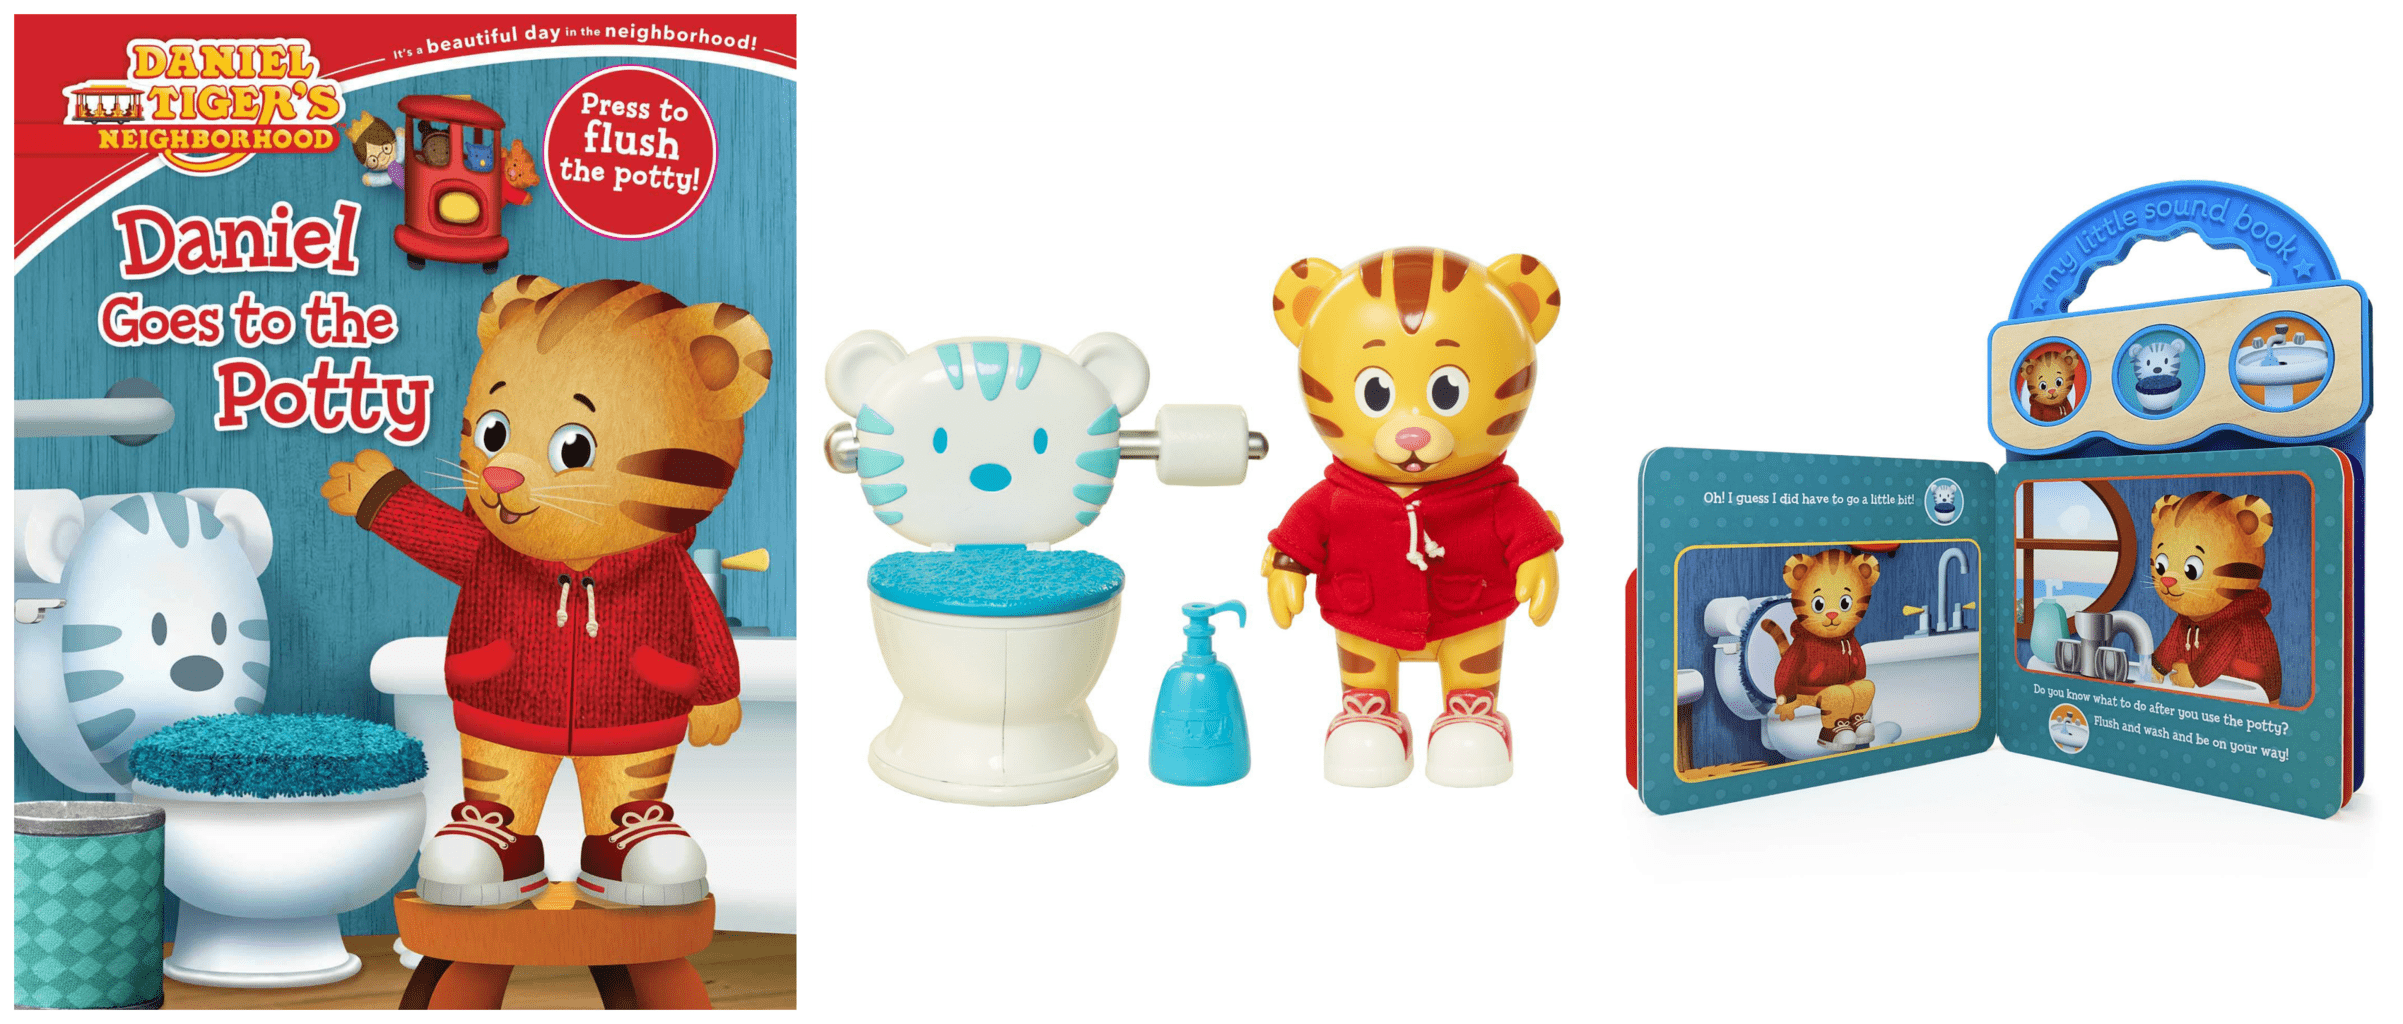 How To Potty Train - Featuring Daniel Tiger on This Little Home of Mine